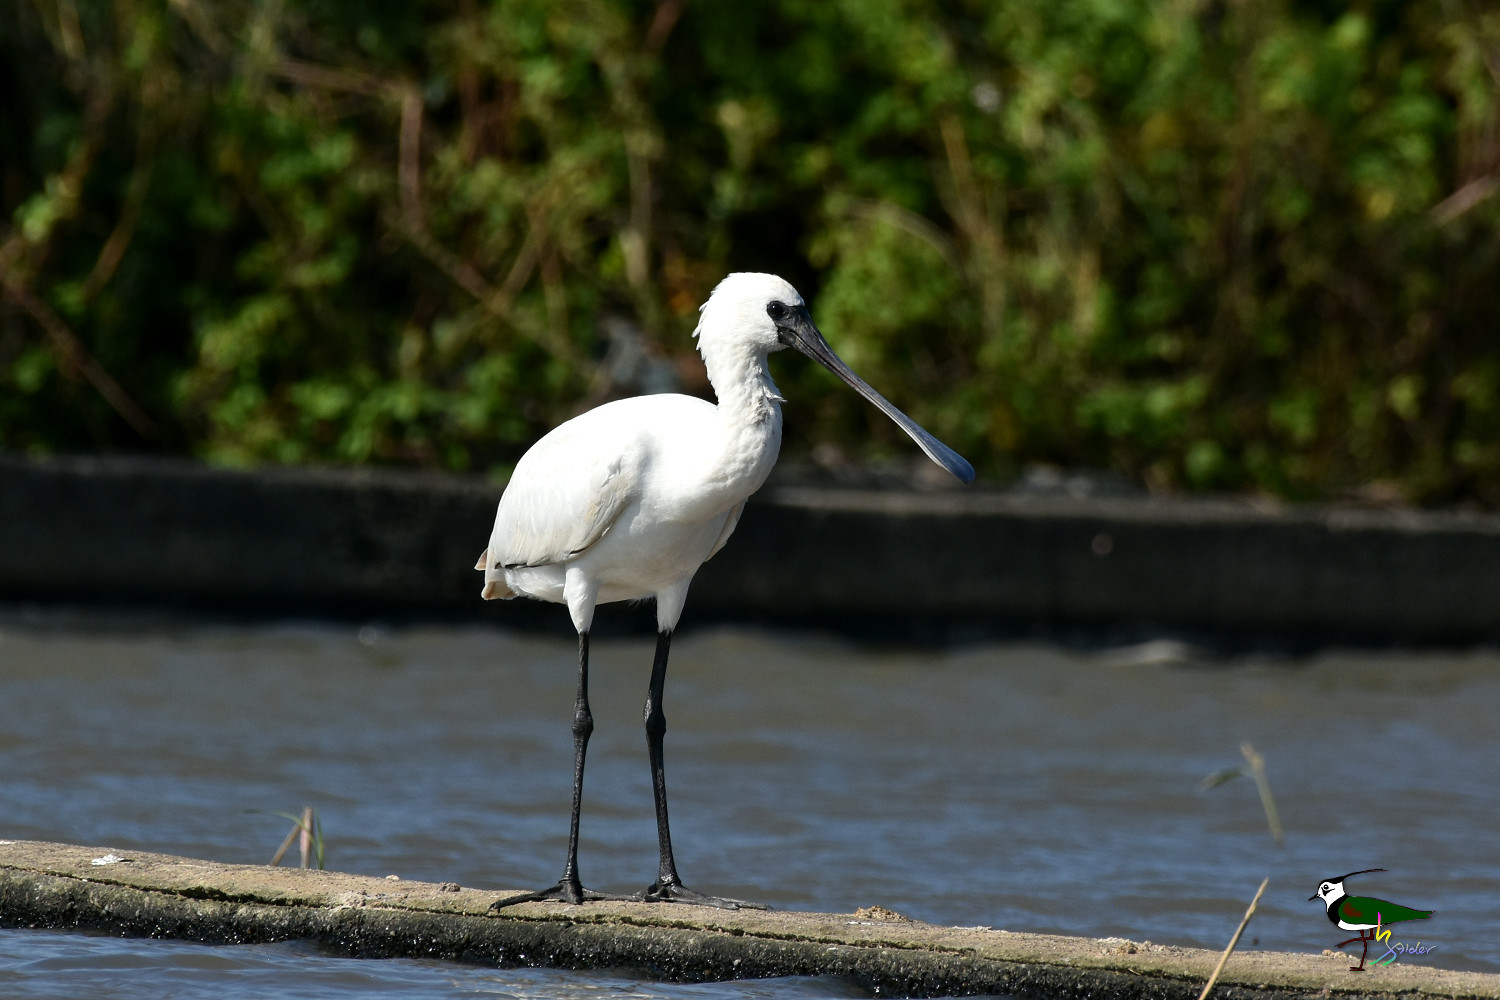 Black-faced_Spoonbill_0403